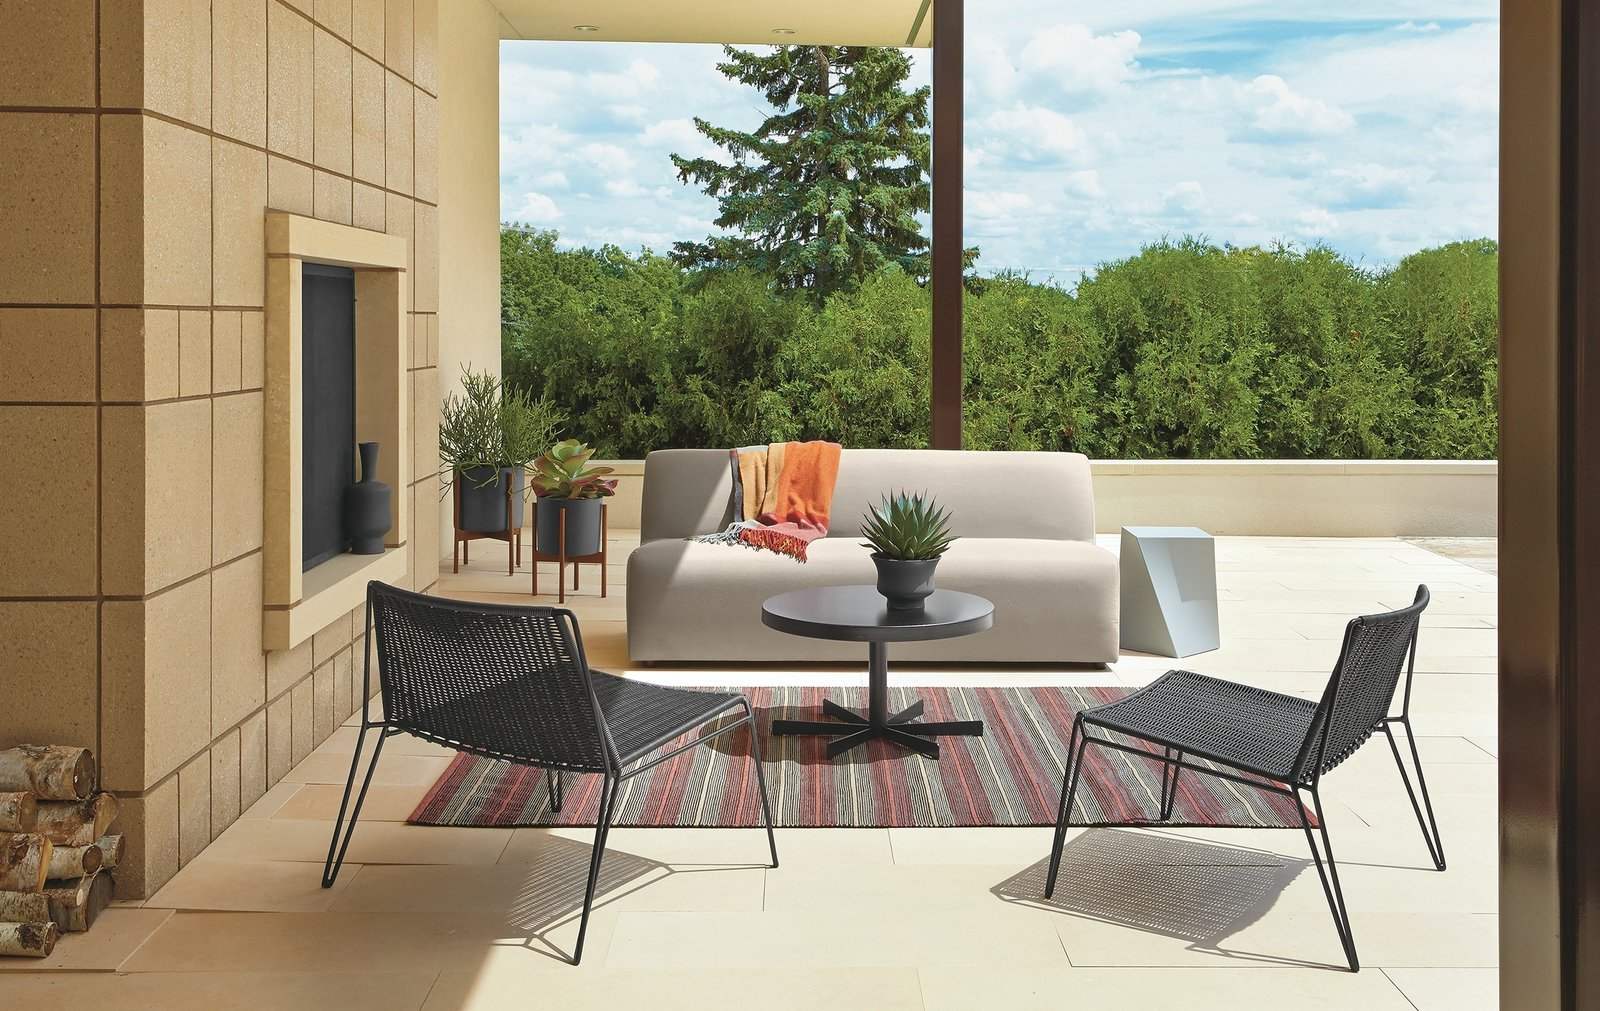 Outdoor, Large Patio, Porch, Deck, Planters Patio, Porch, Deck, Concrete Patio, Porch, Deck, Trees, and Raised Planters Laguna sofa, Penelope lounge chairs, Penelope cocktail table, Case Study planters  Photo 4 of 8 in Expert Design Advice: Outdoor Dining Spaces